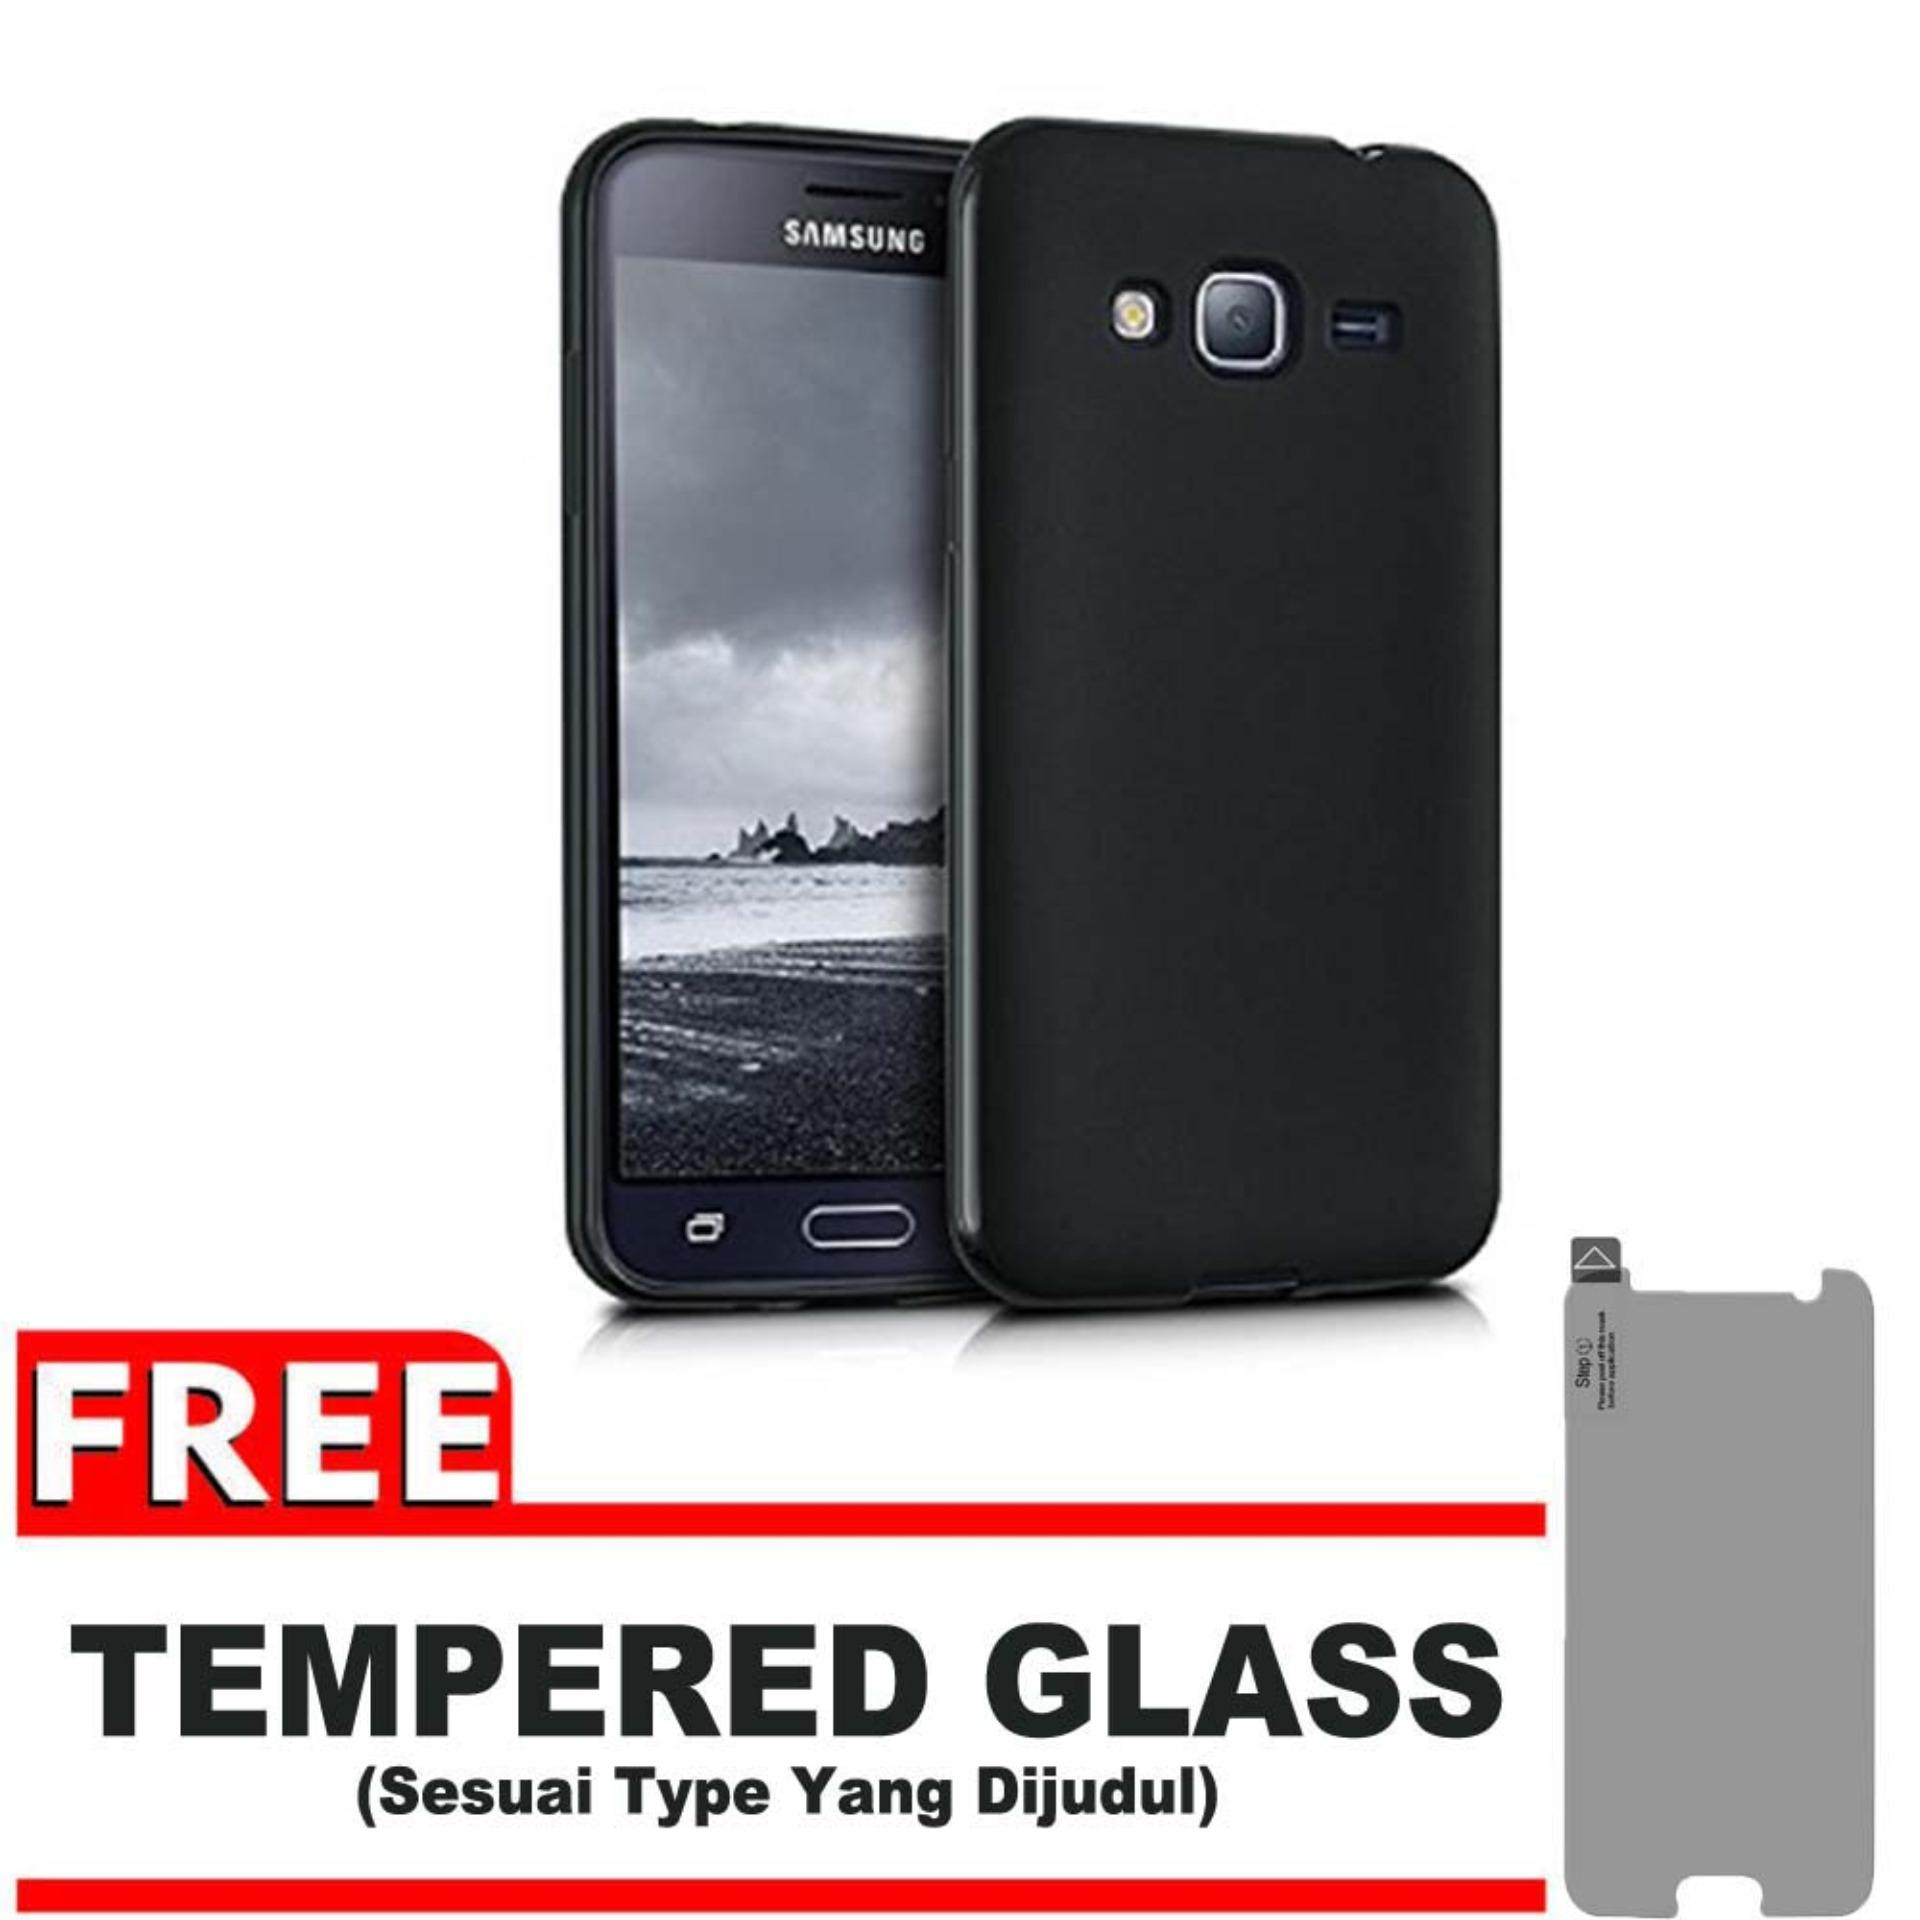 DarkNight for Samsung Galaxy J3 (Lama/Pertama) / J300 / J310 / J320 / 4G LTE / Duos| Slim Case Black Matte Softcase Premium (Anti Minyak/Anti Sidik Jari) - Gratis Free Tempered Glass Protector - Hitam Doff